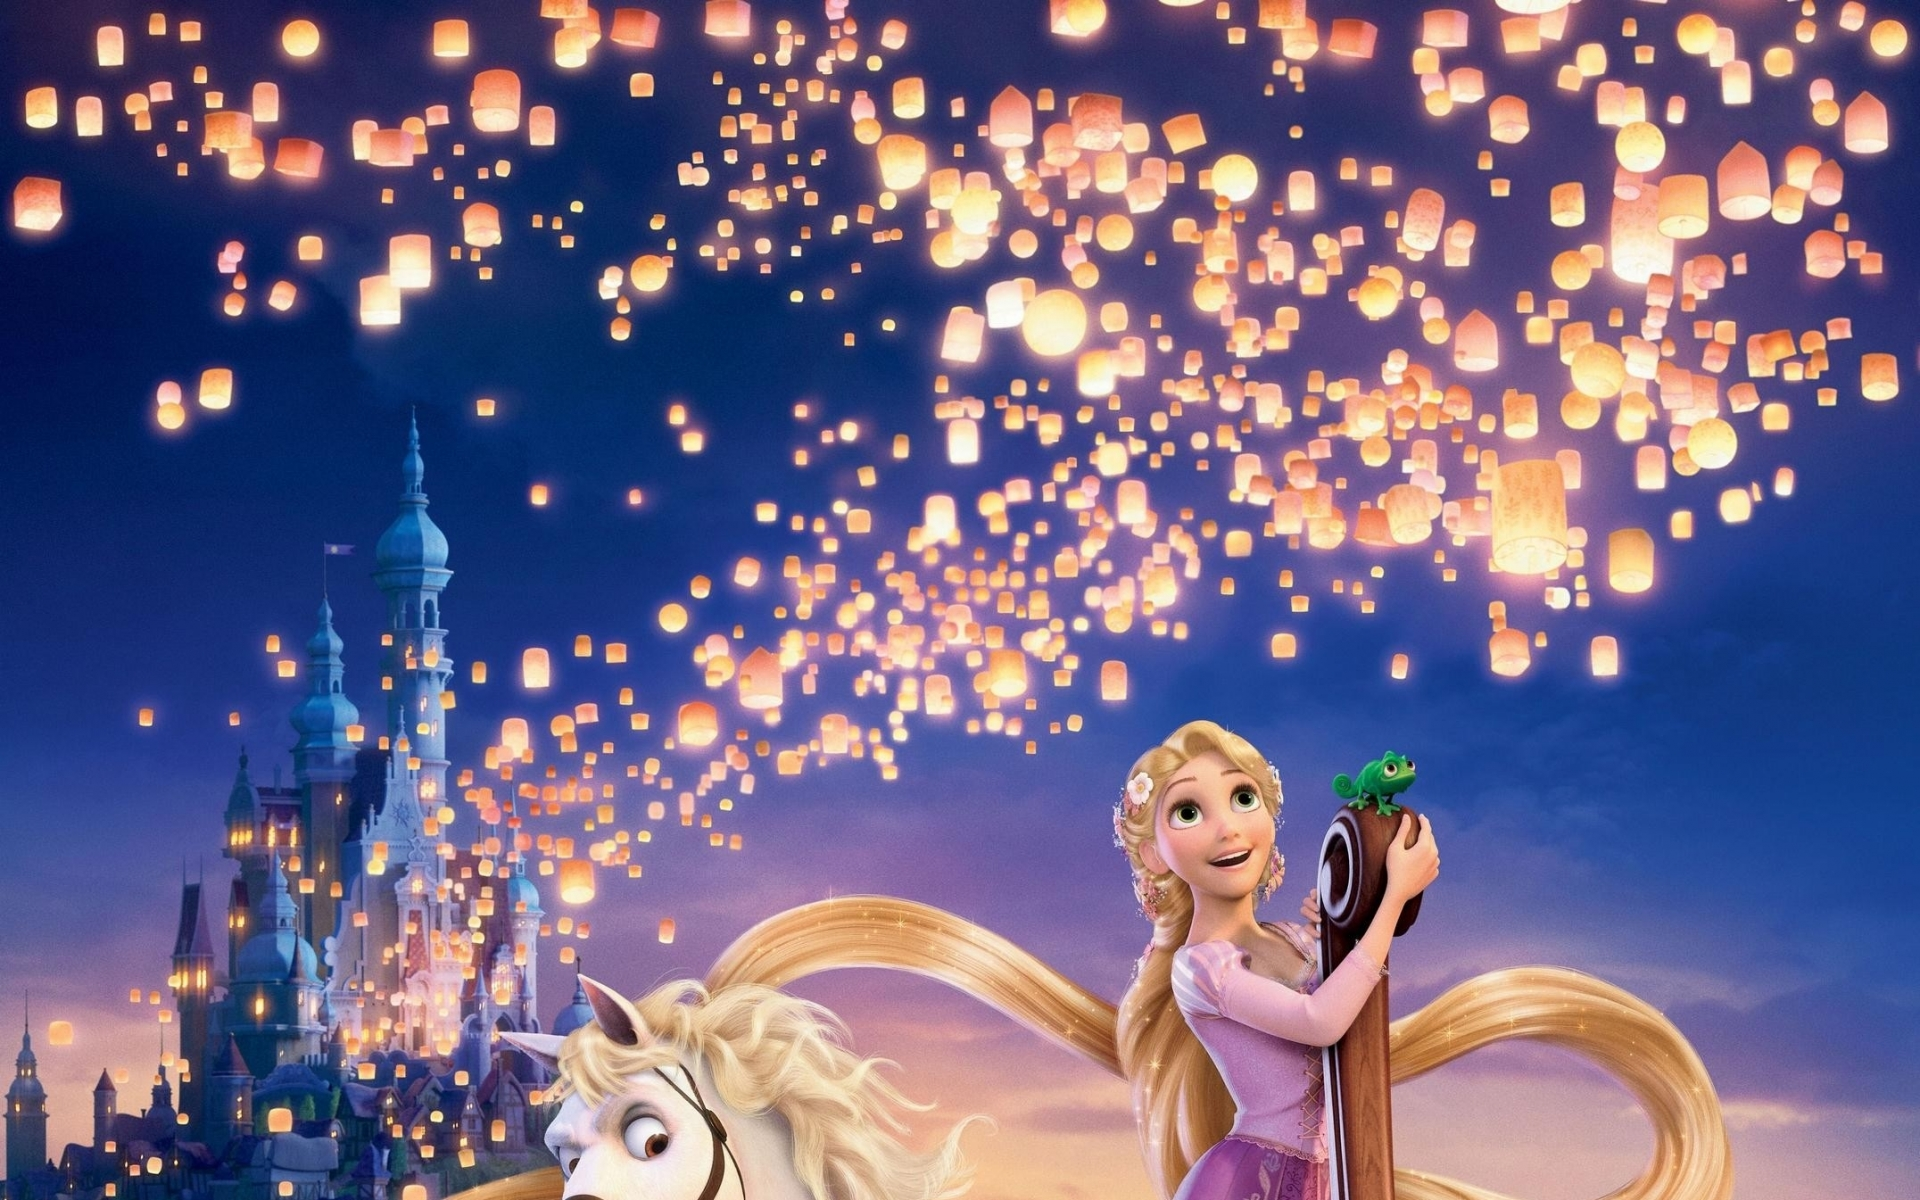 Picture. Disney Tangled Photo Download Free. Disney Tangled Wallpaper ...